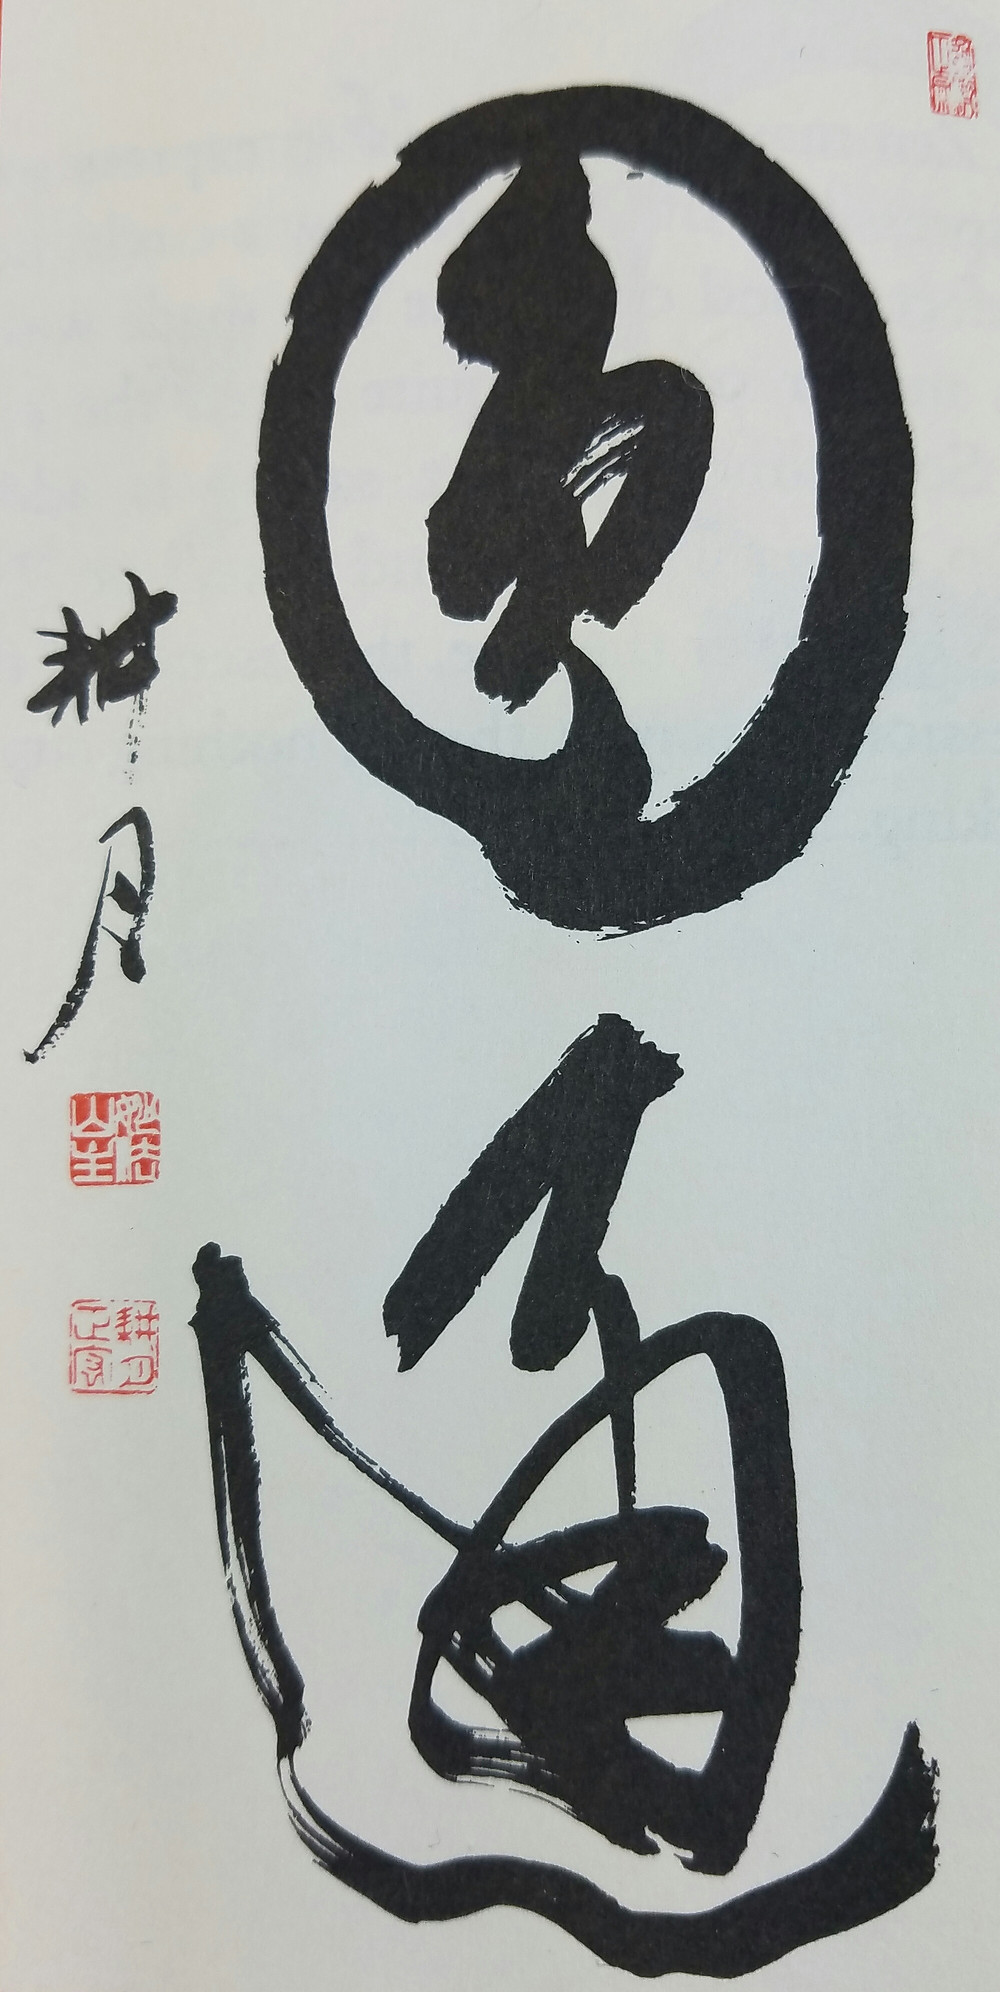 Calligraphy from Zen Word, Zen Calligraphy by Shimano and Tani